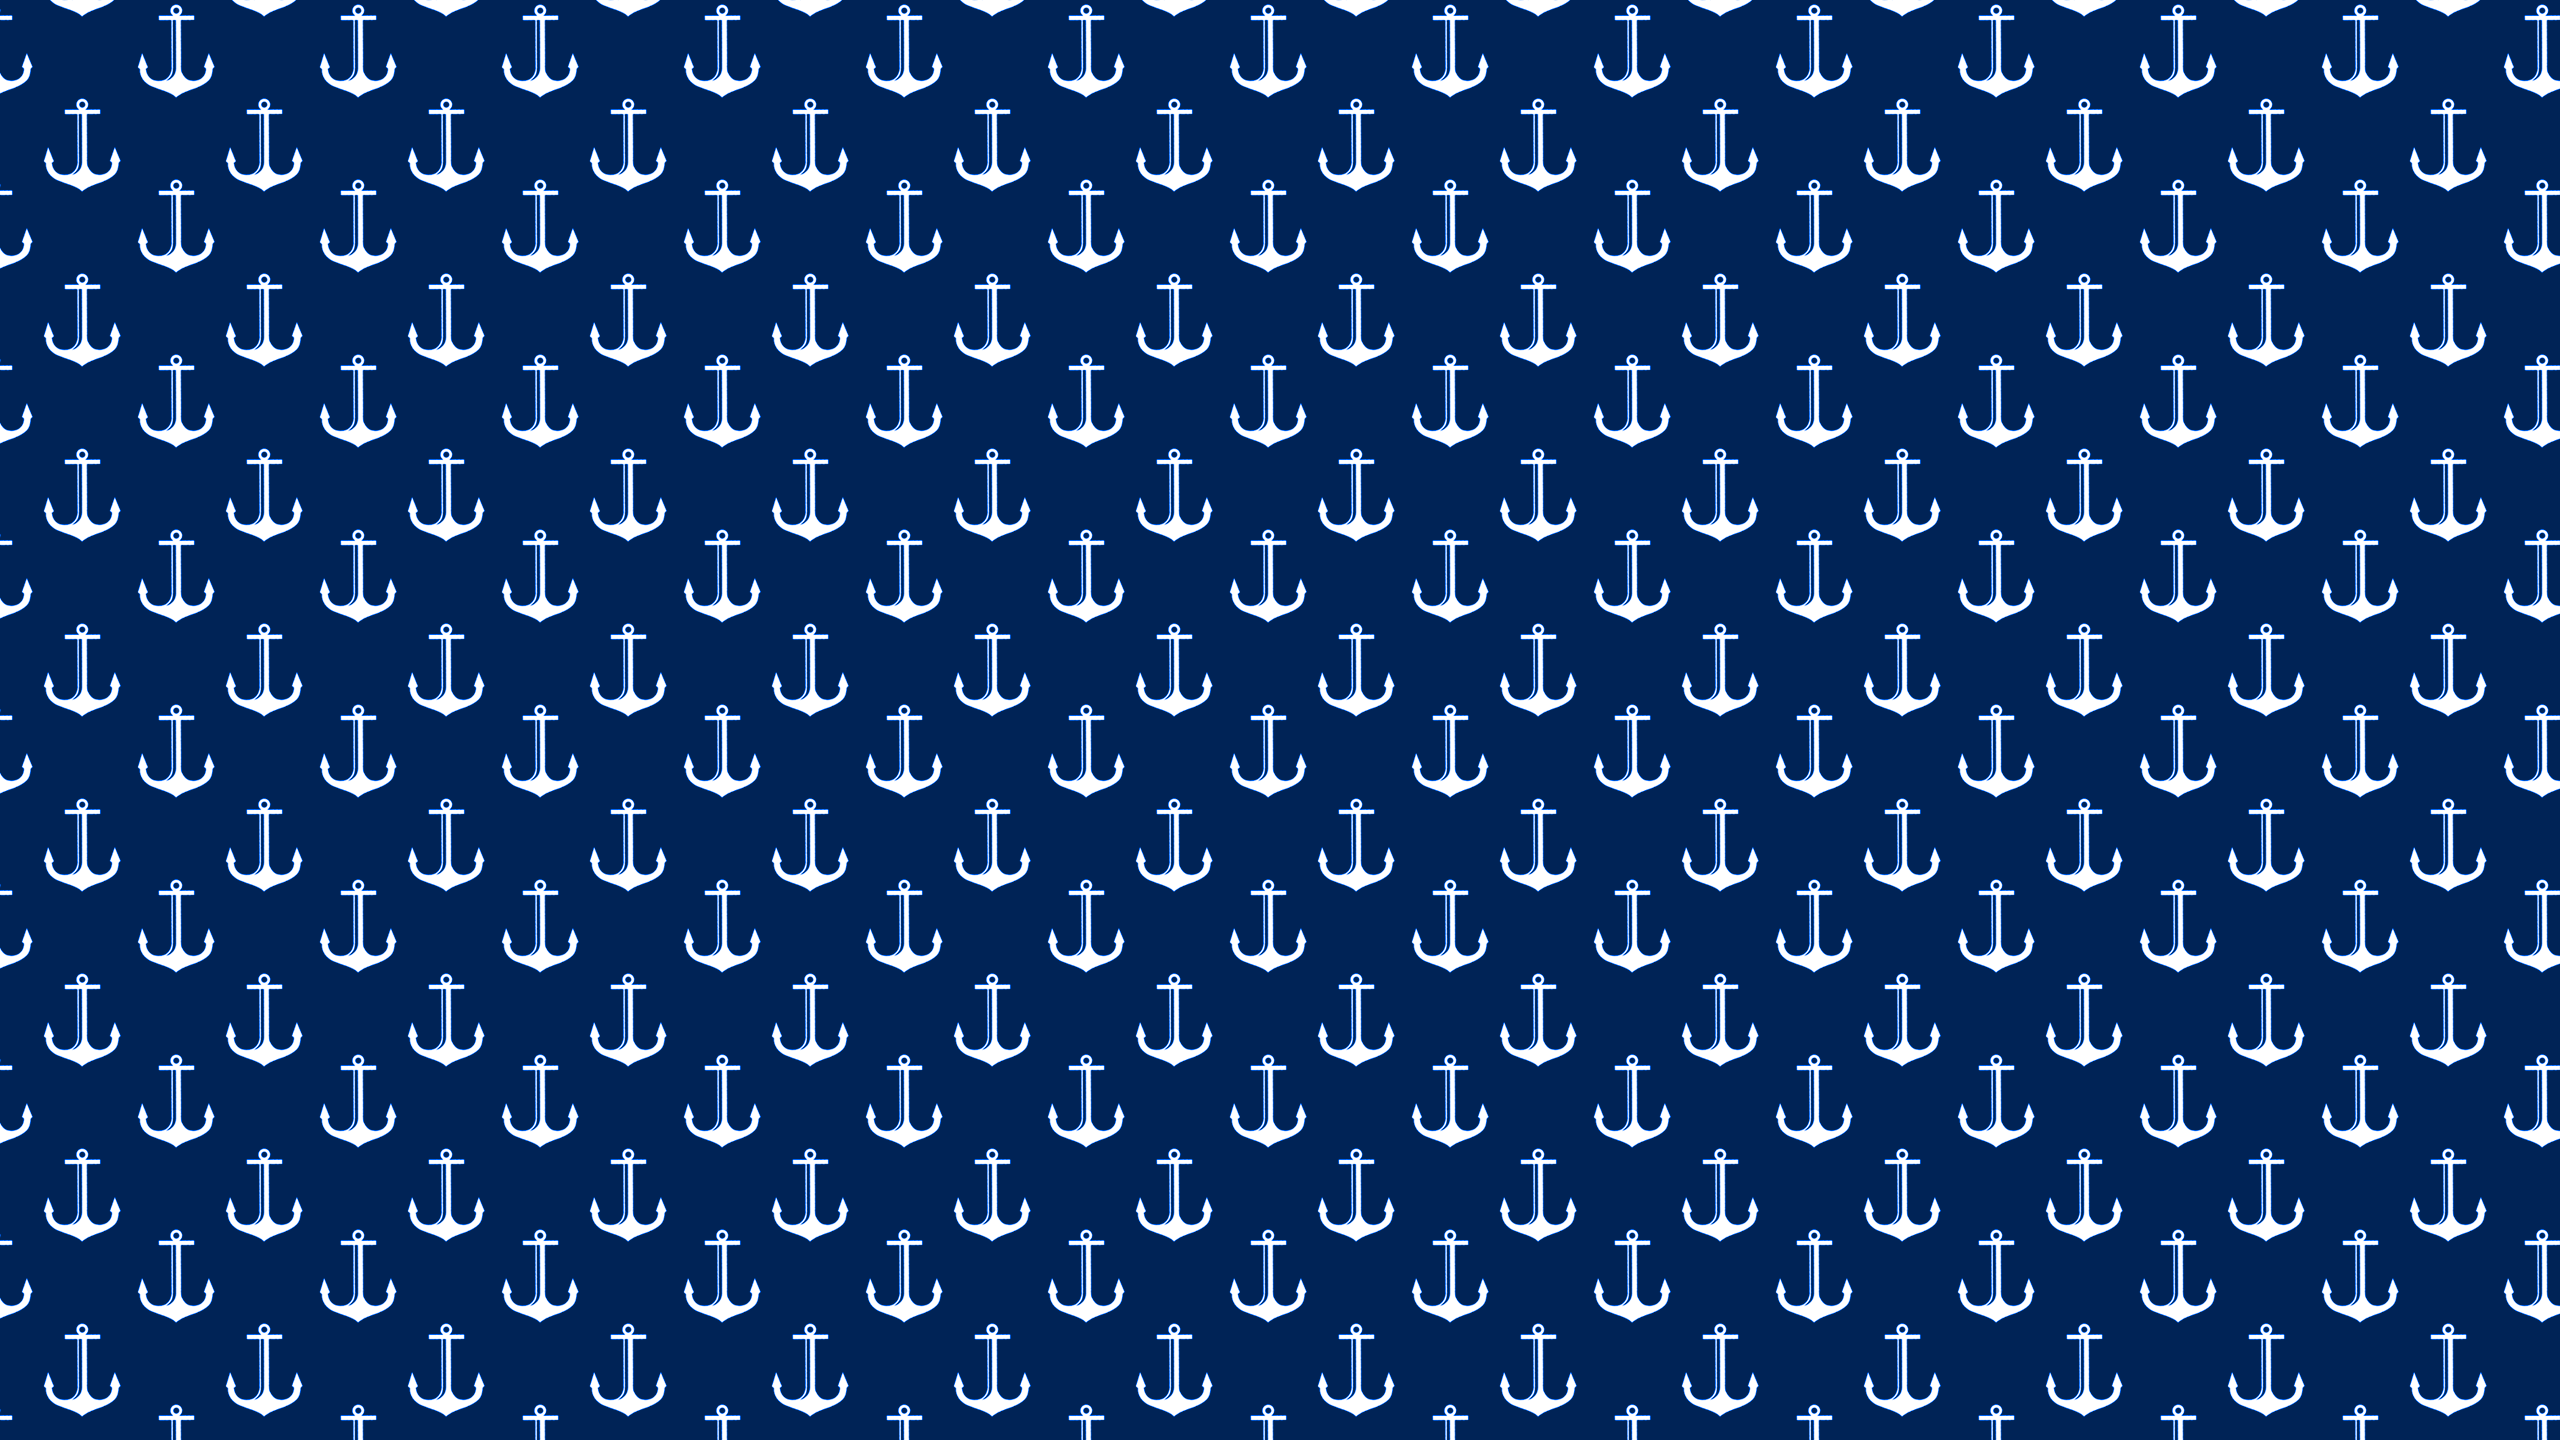 Navy Blue Anchors Desktop Wallpaper is easy Just save the wallpaper 2560x1440